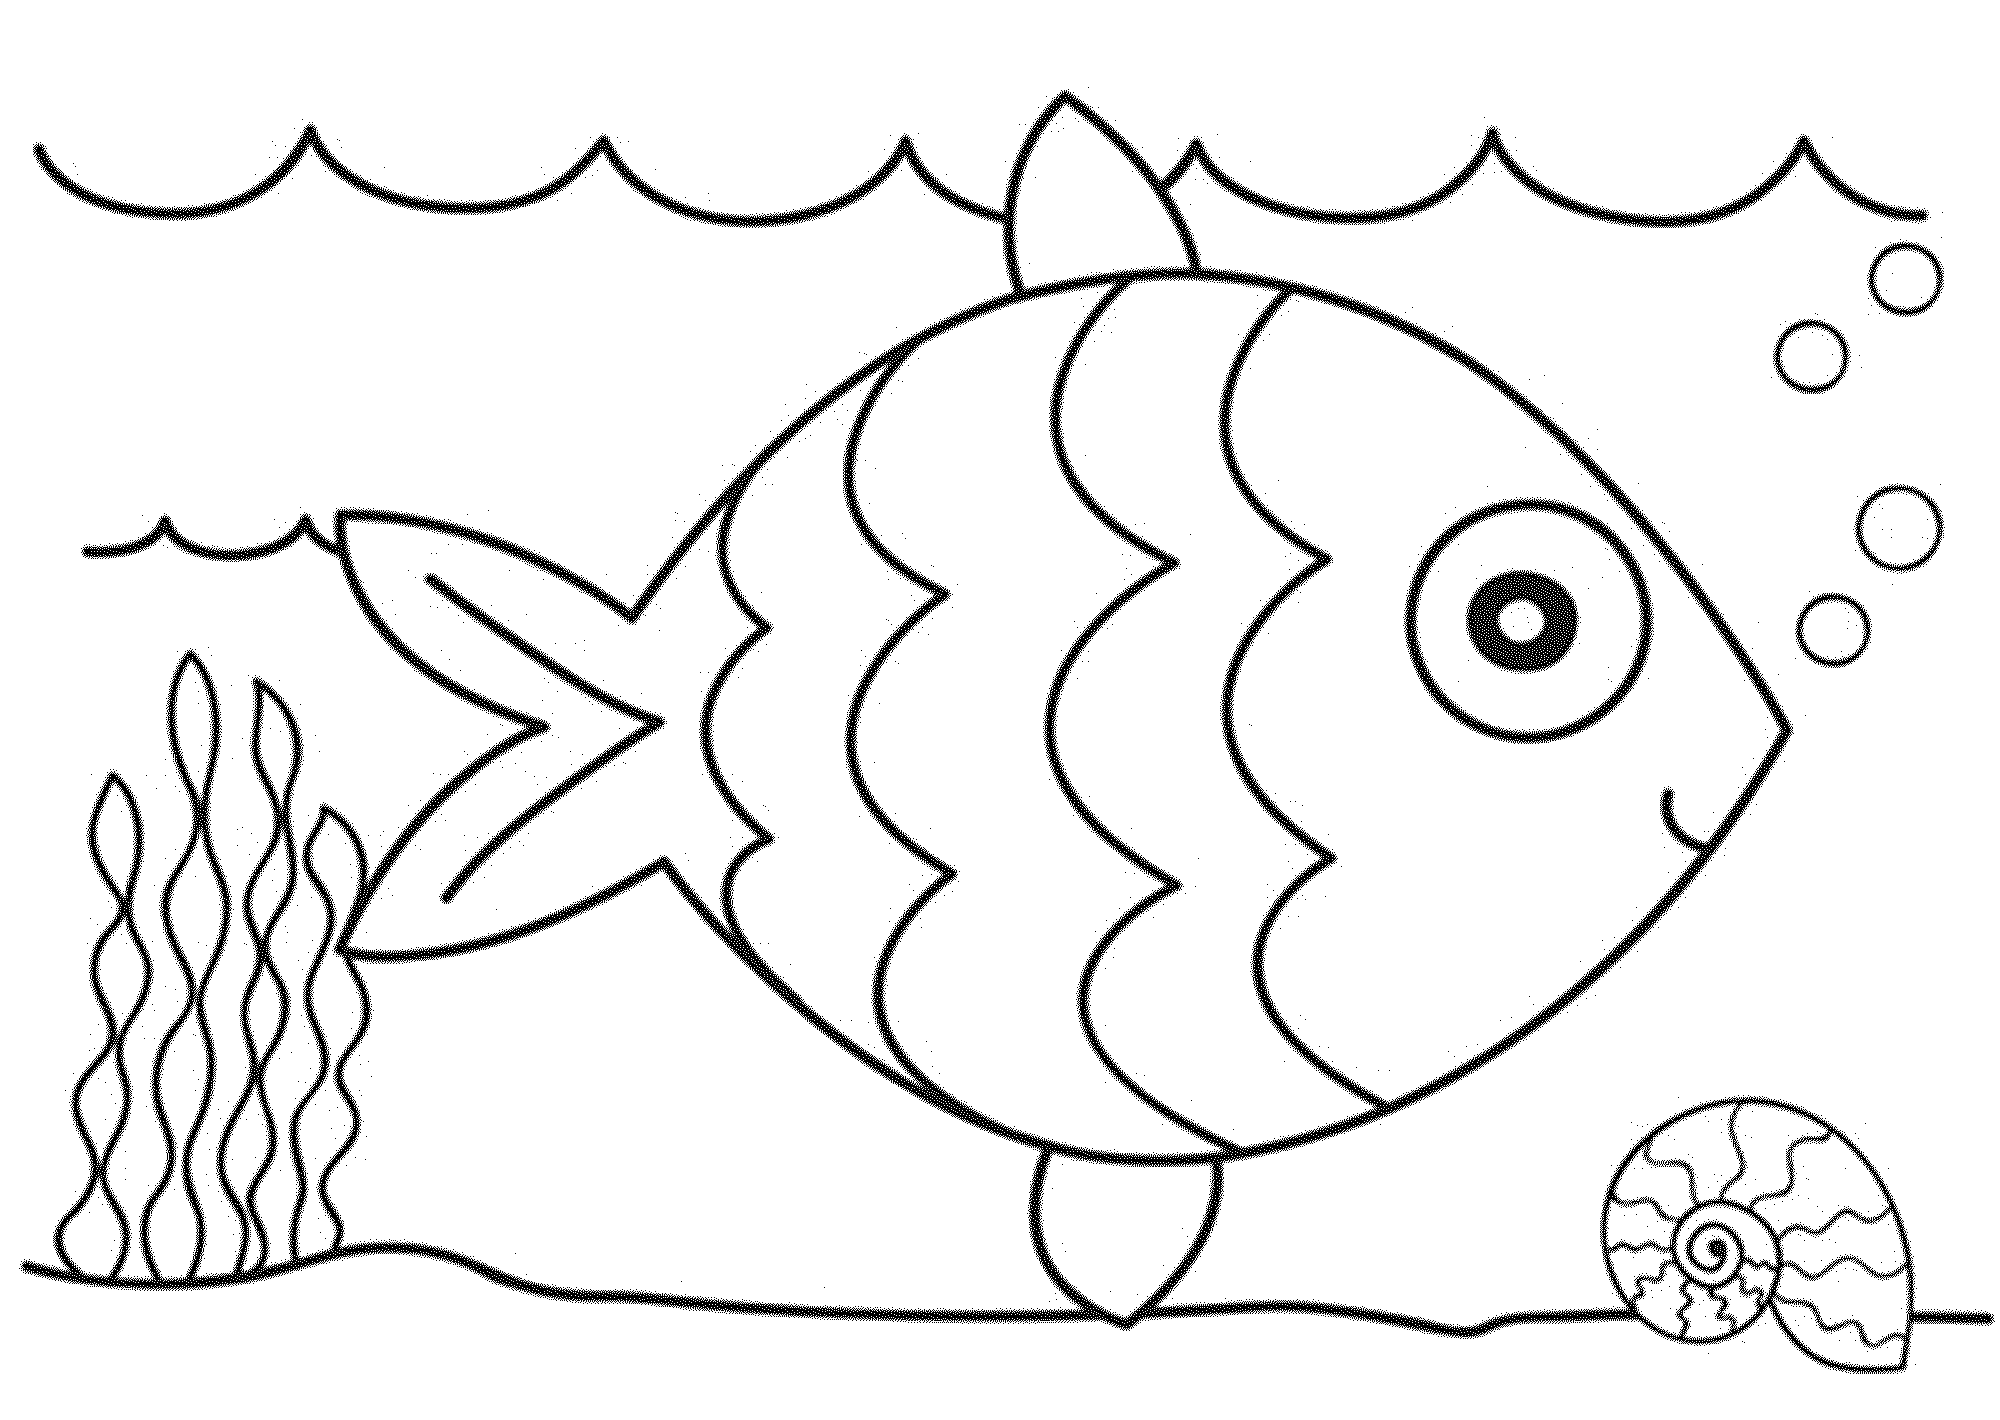 printable toddler coloring pages pdf - Clip Art Library